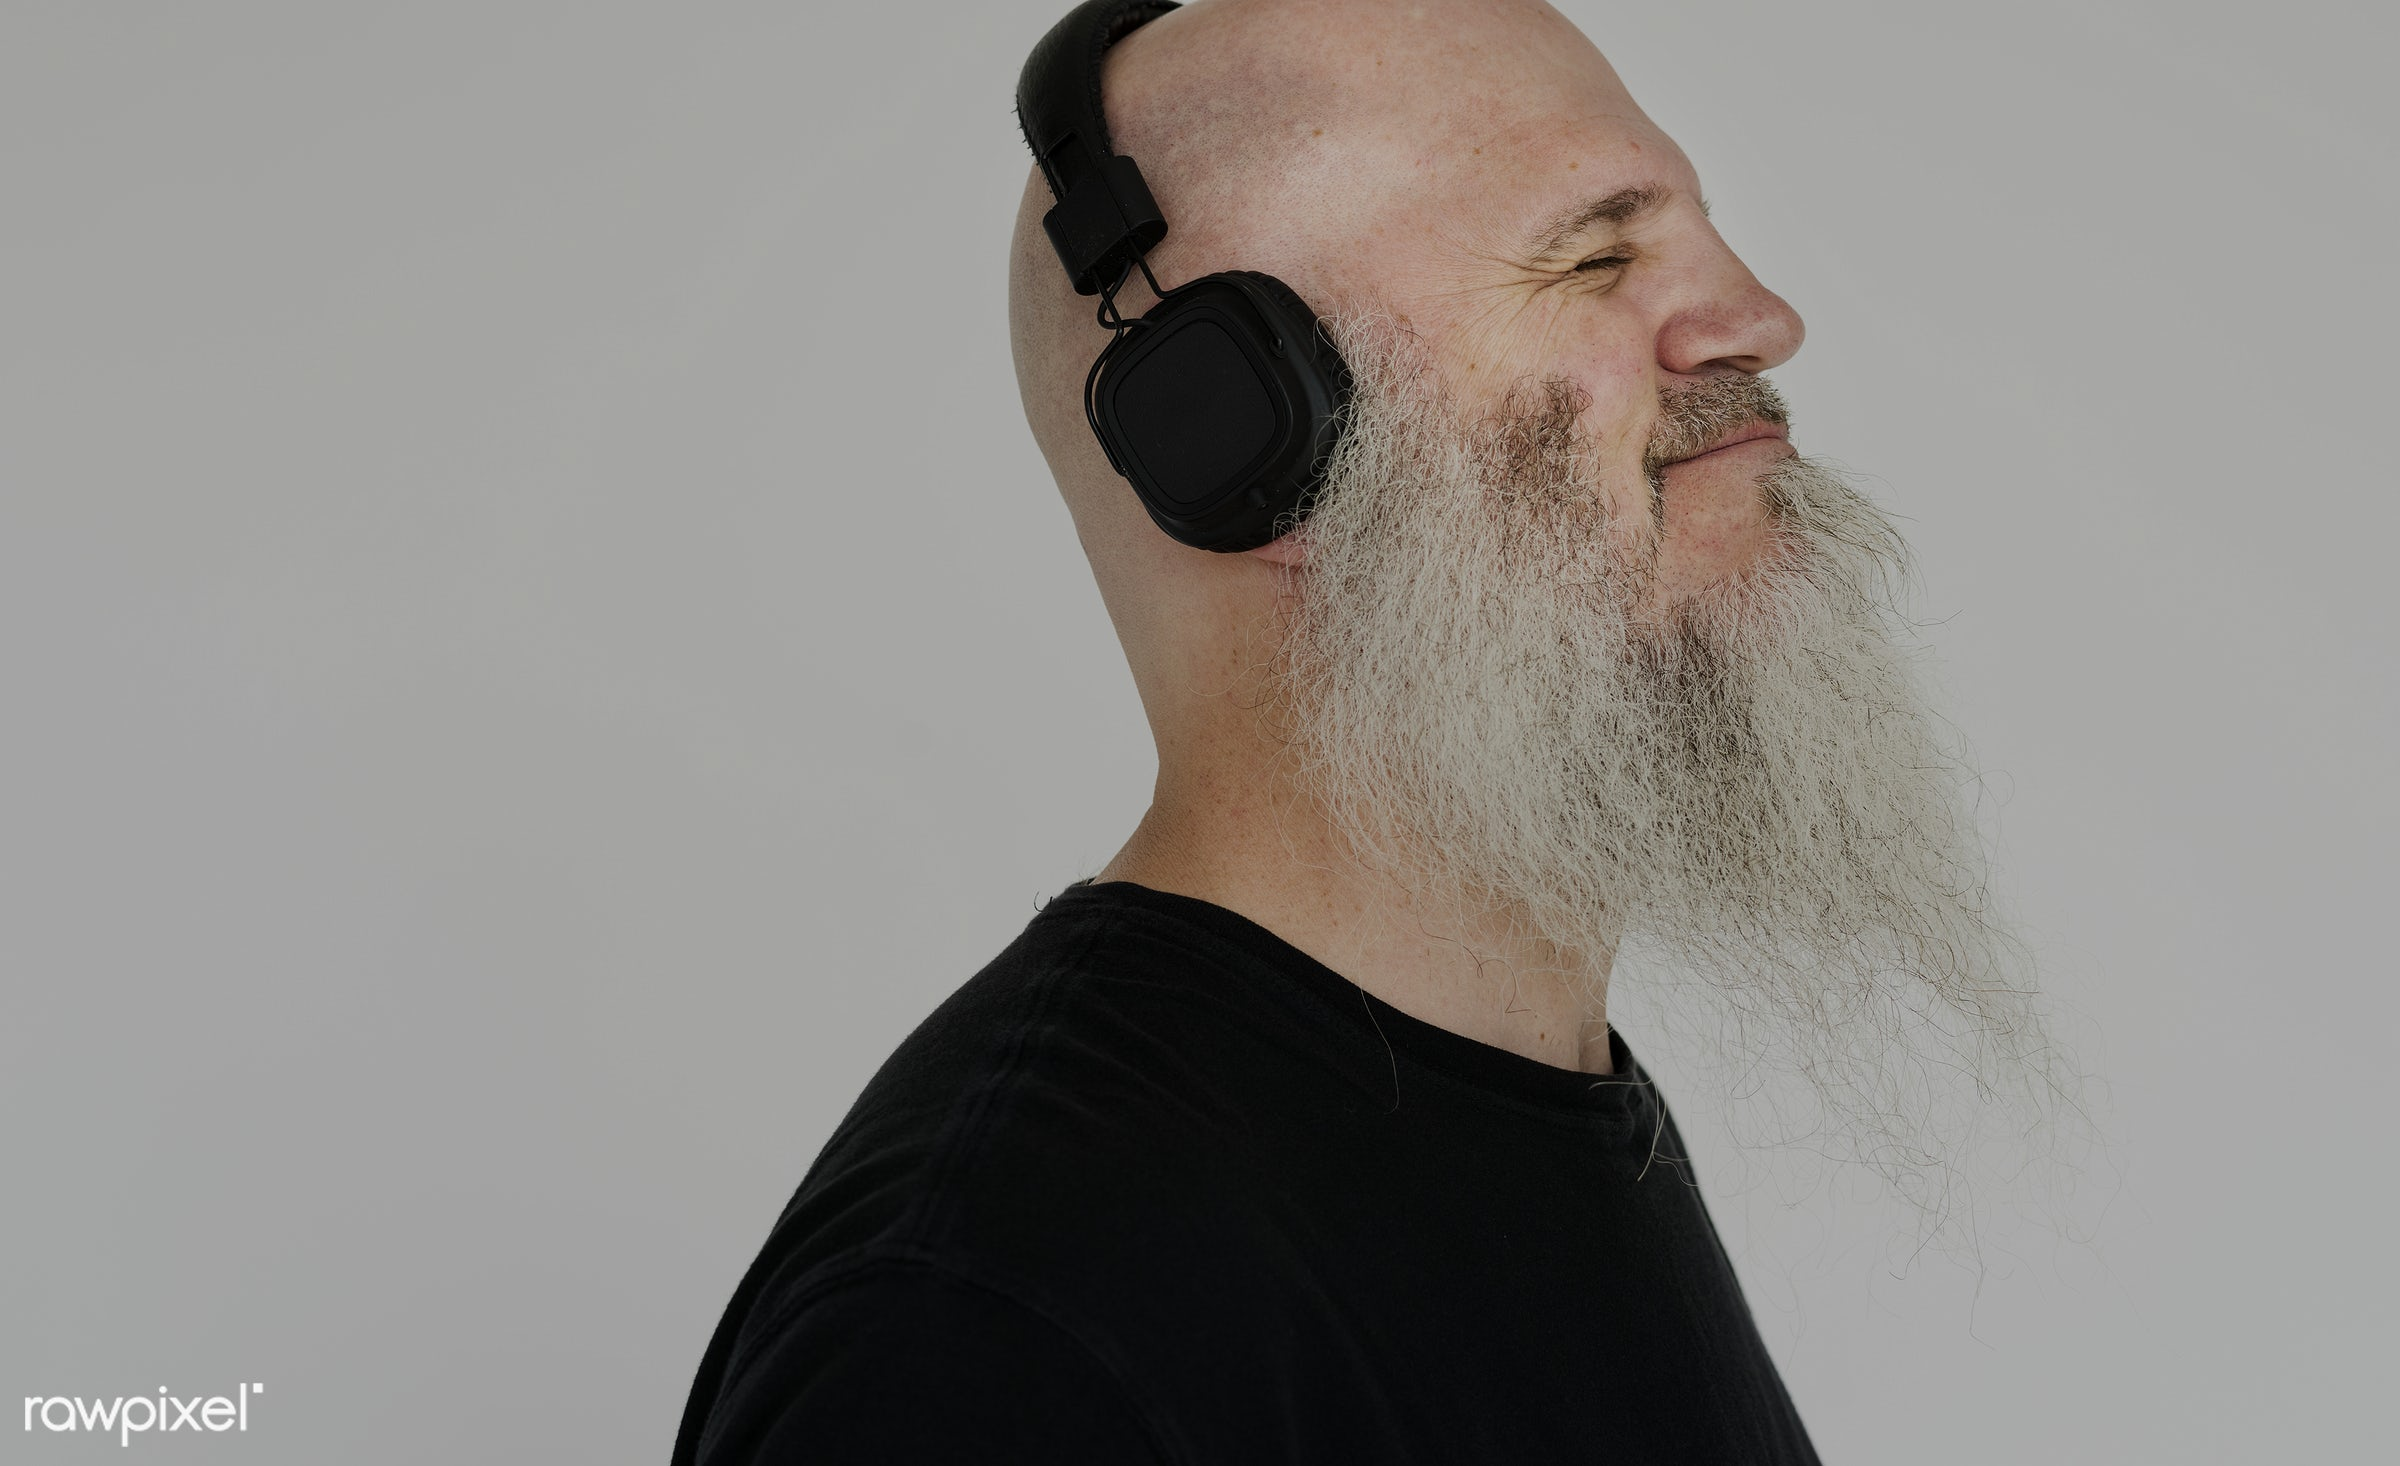 Portrait of a big bearded man listening to music - studio, concept, model, person, people, style, nature, stylish, men, man...